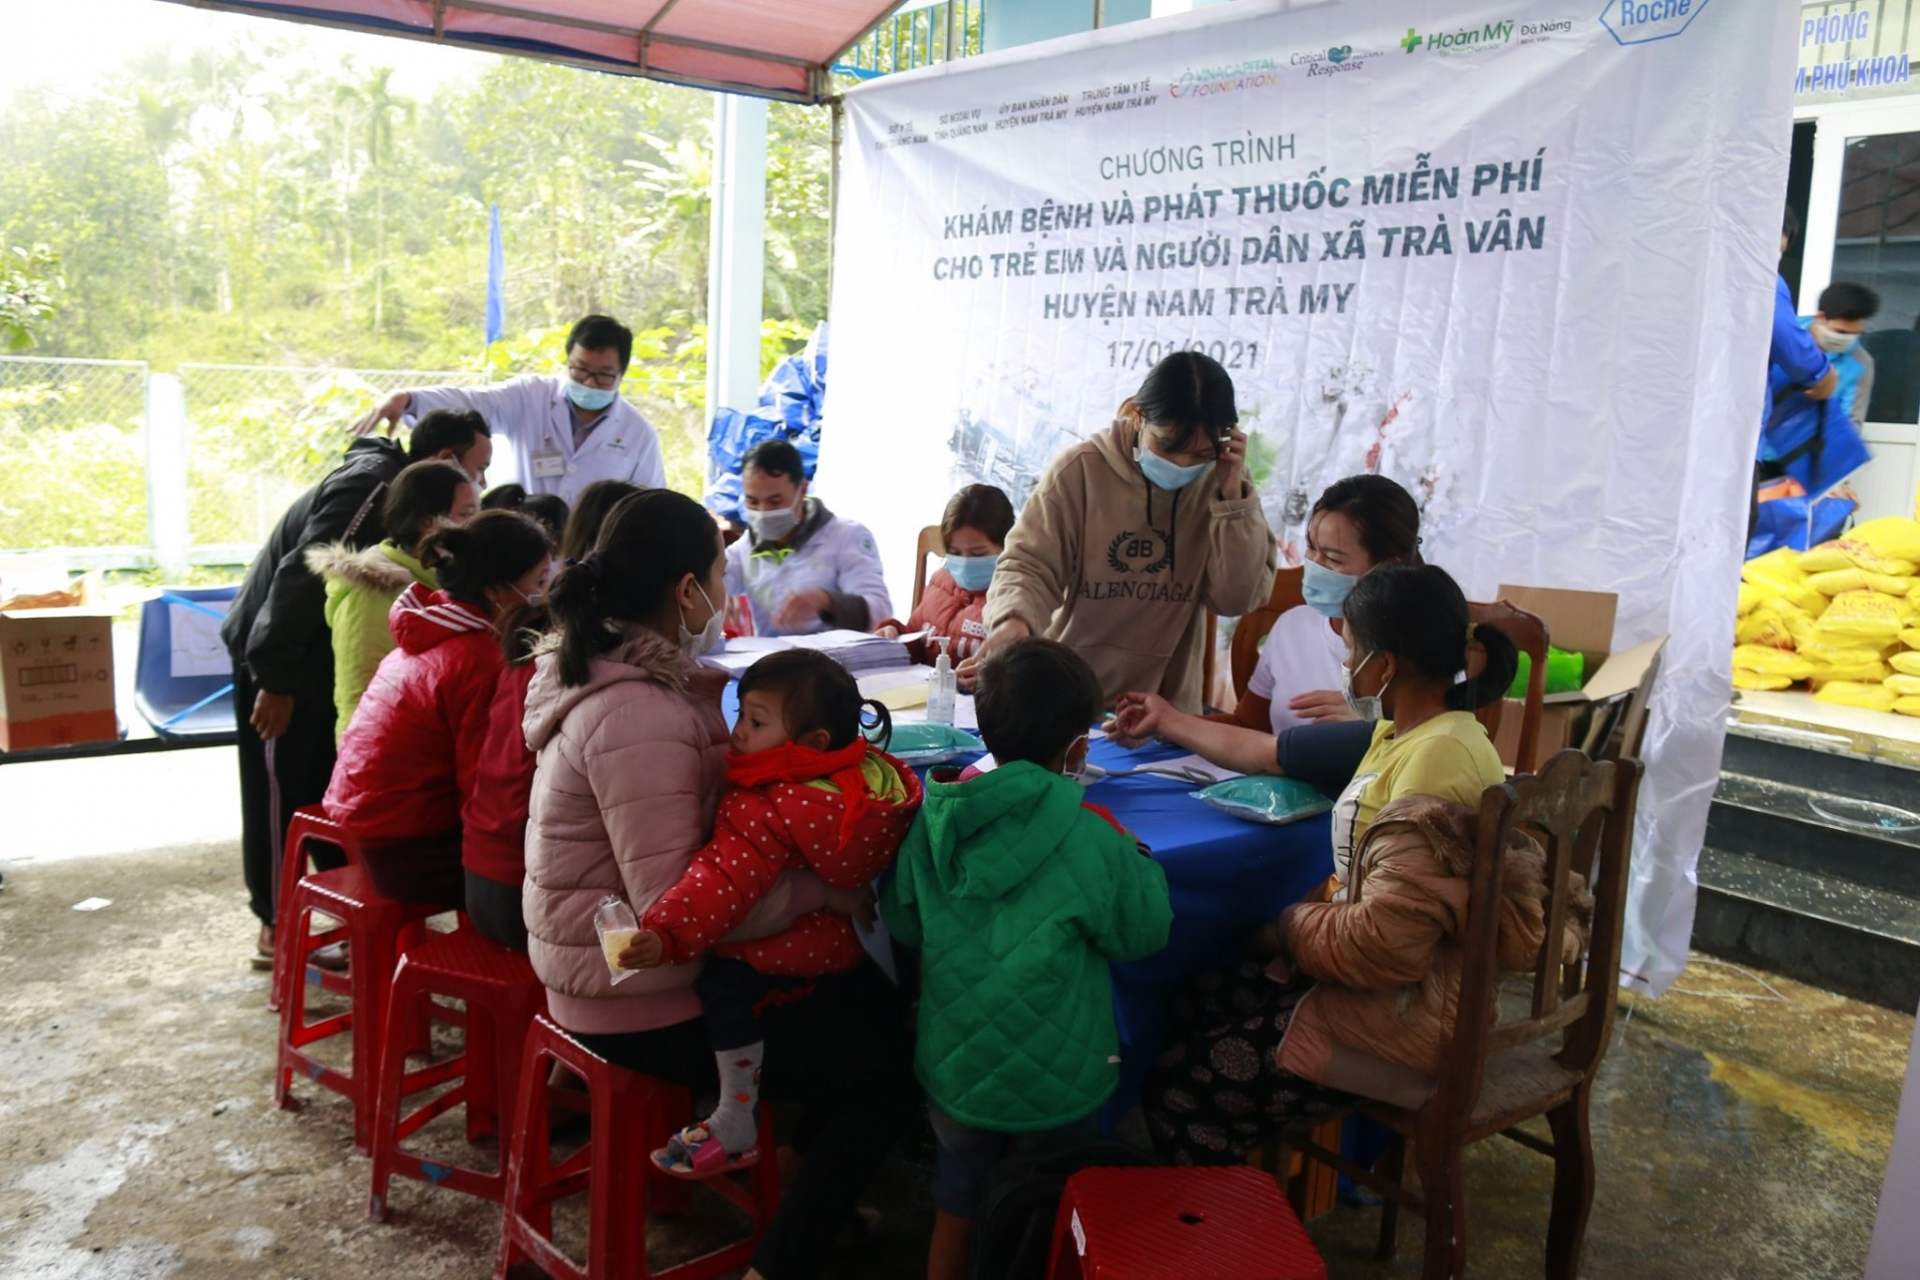 Essuring health care for poor communities heavily affected by natural disasters